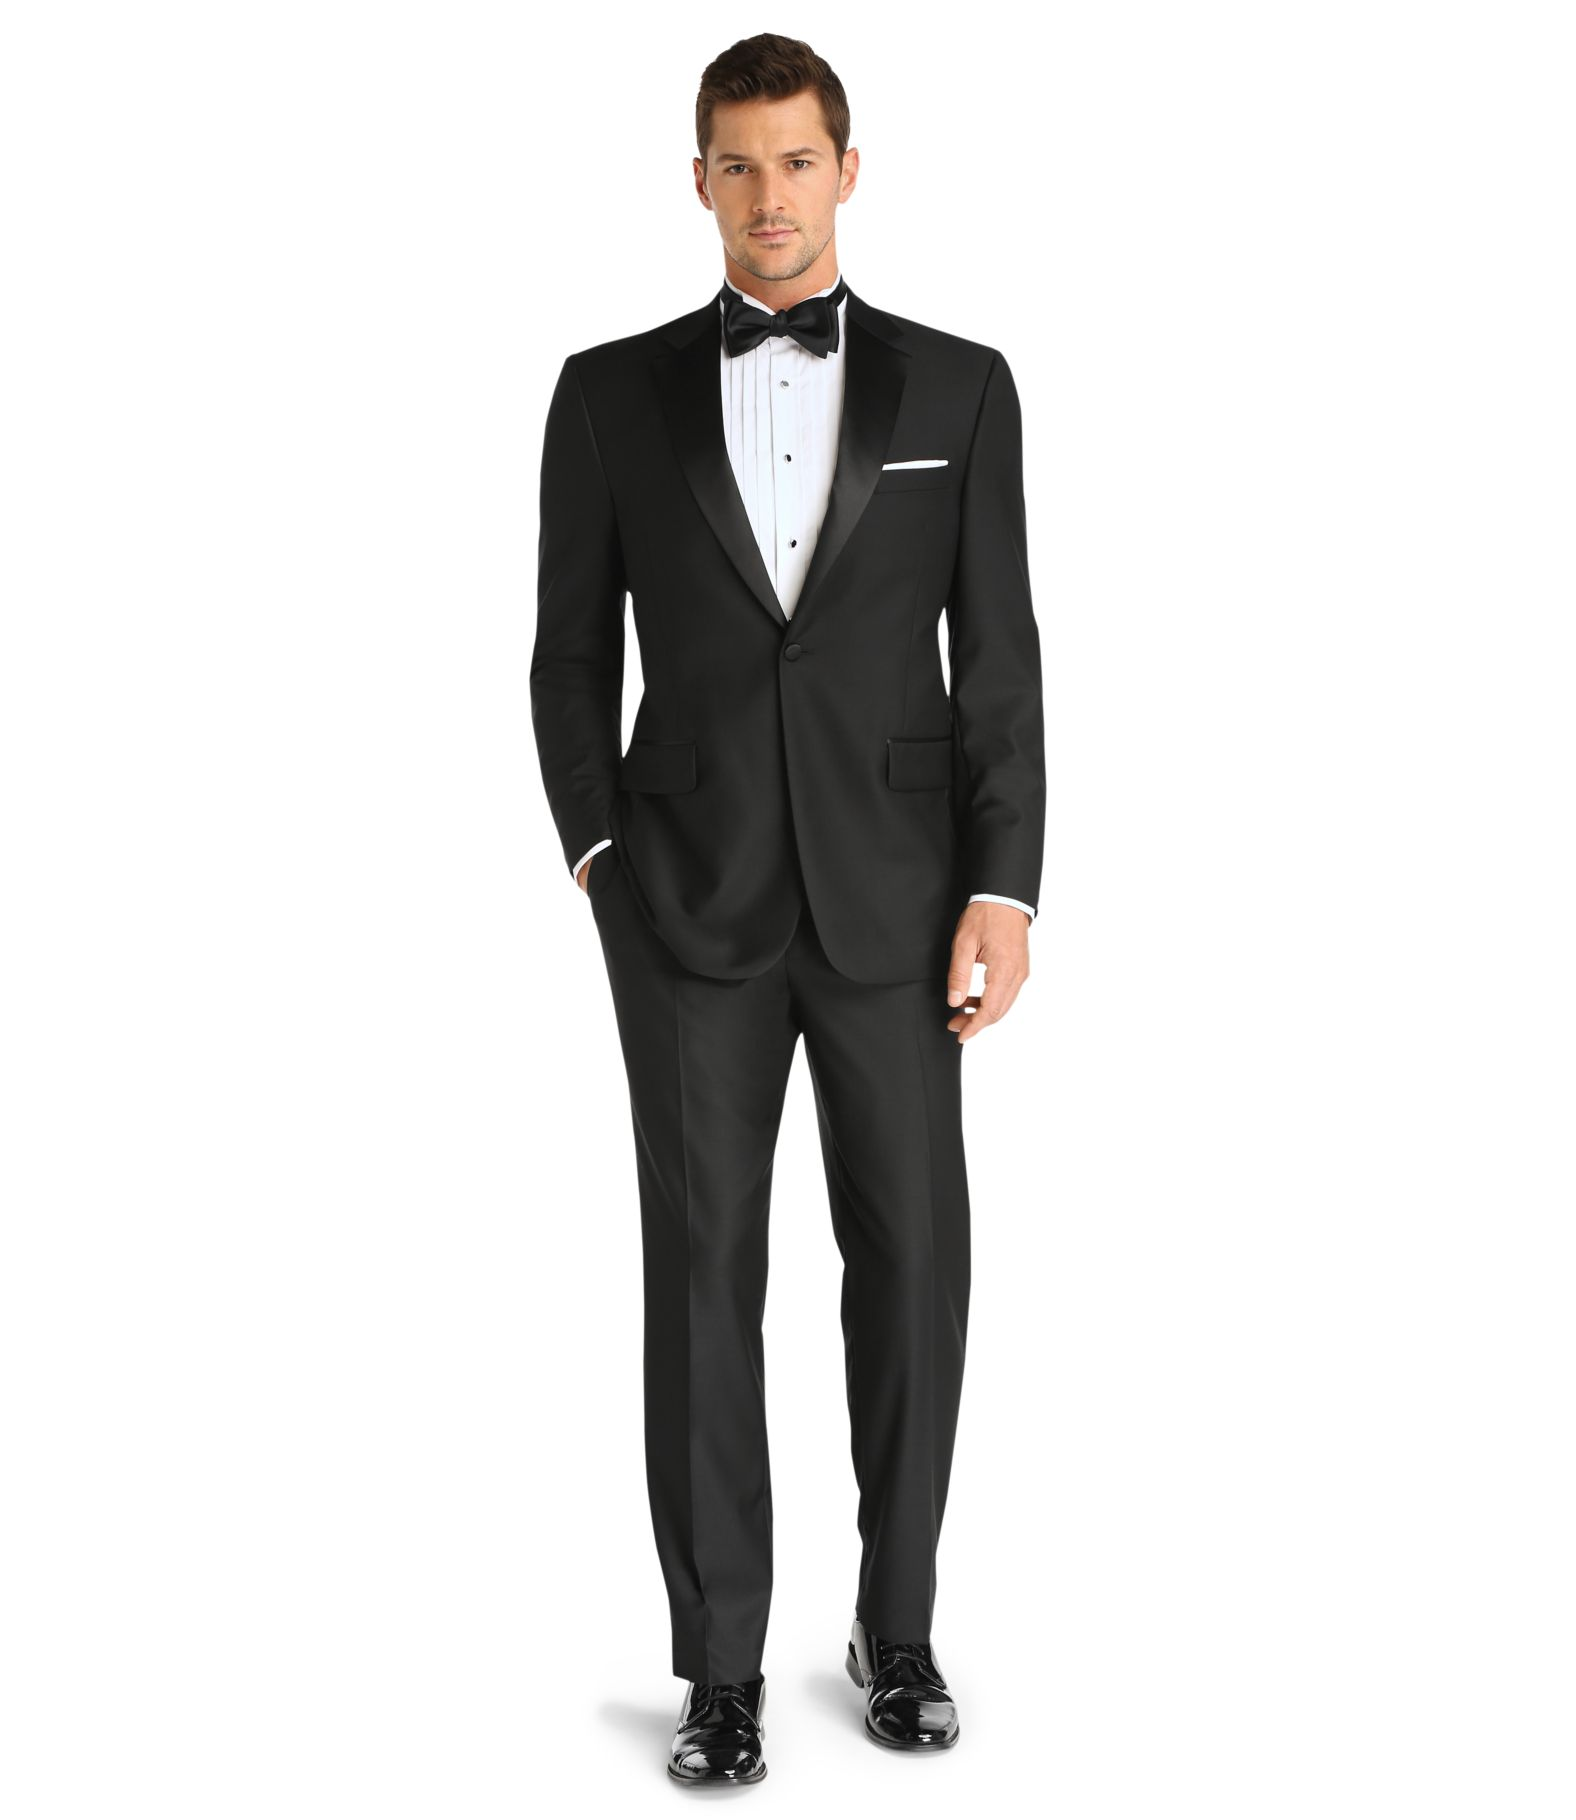 Images Mens Wearhouse Steer Clear Black Men In Tuxedos Prom Ideas